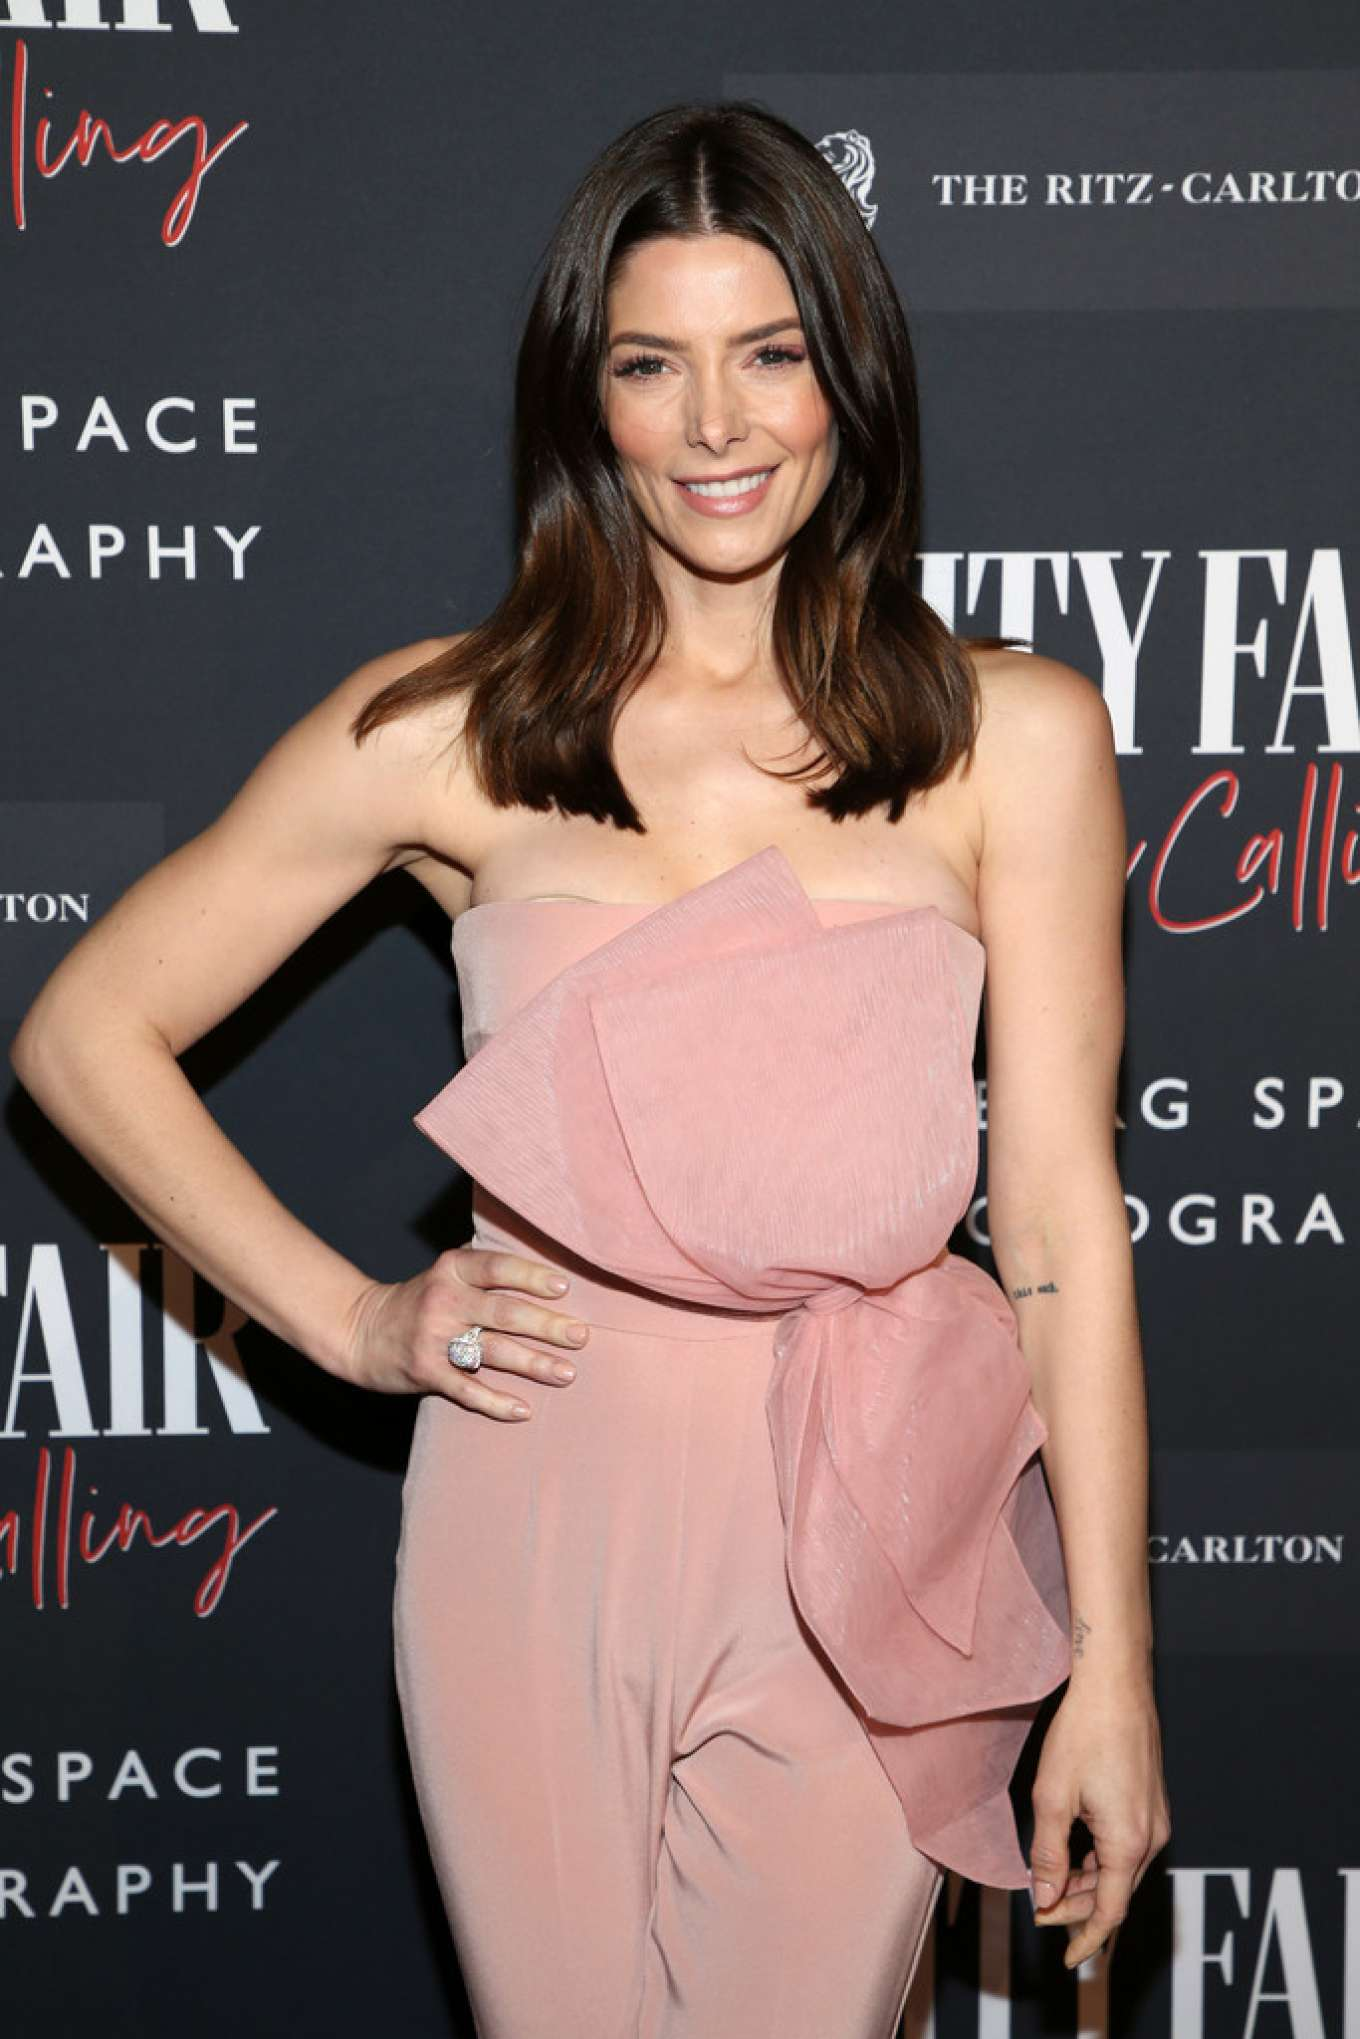 Ashley Greene - 'Vanity Fair: Hollywood Calling' Opening in Century City